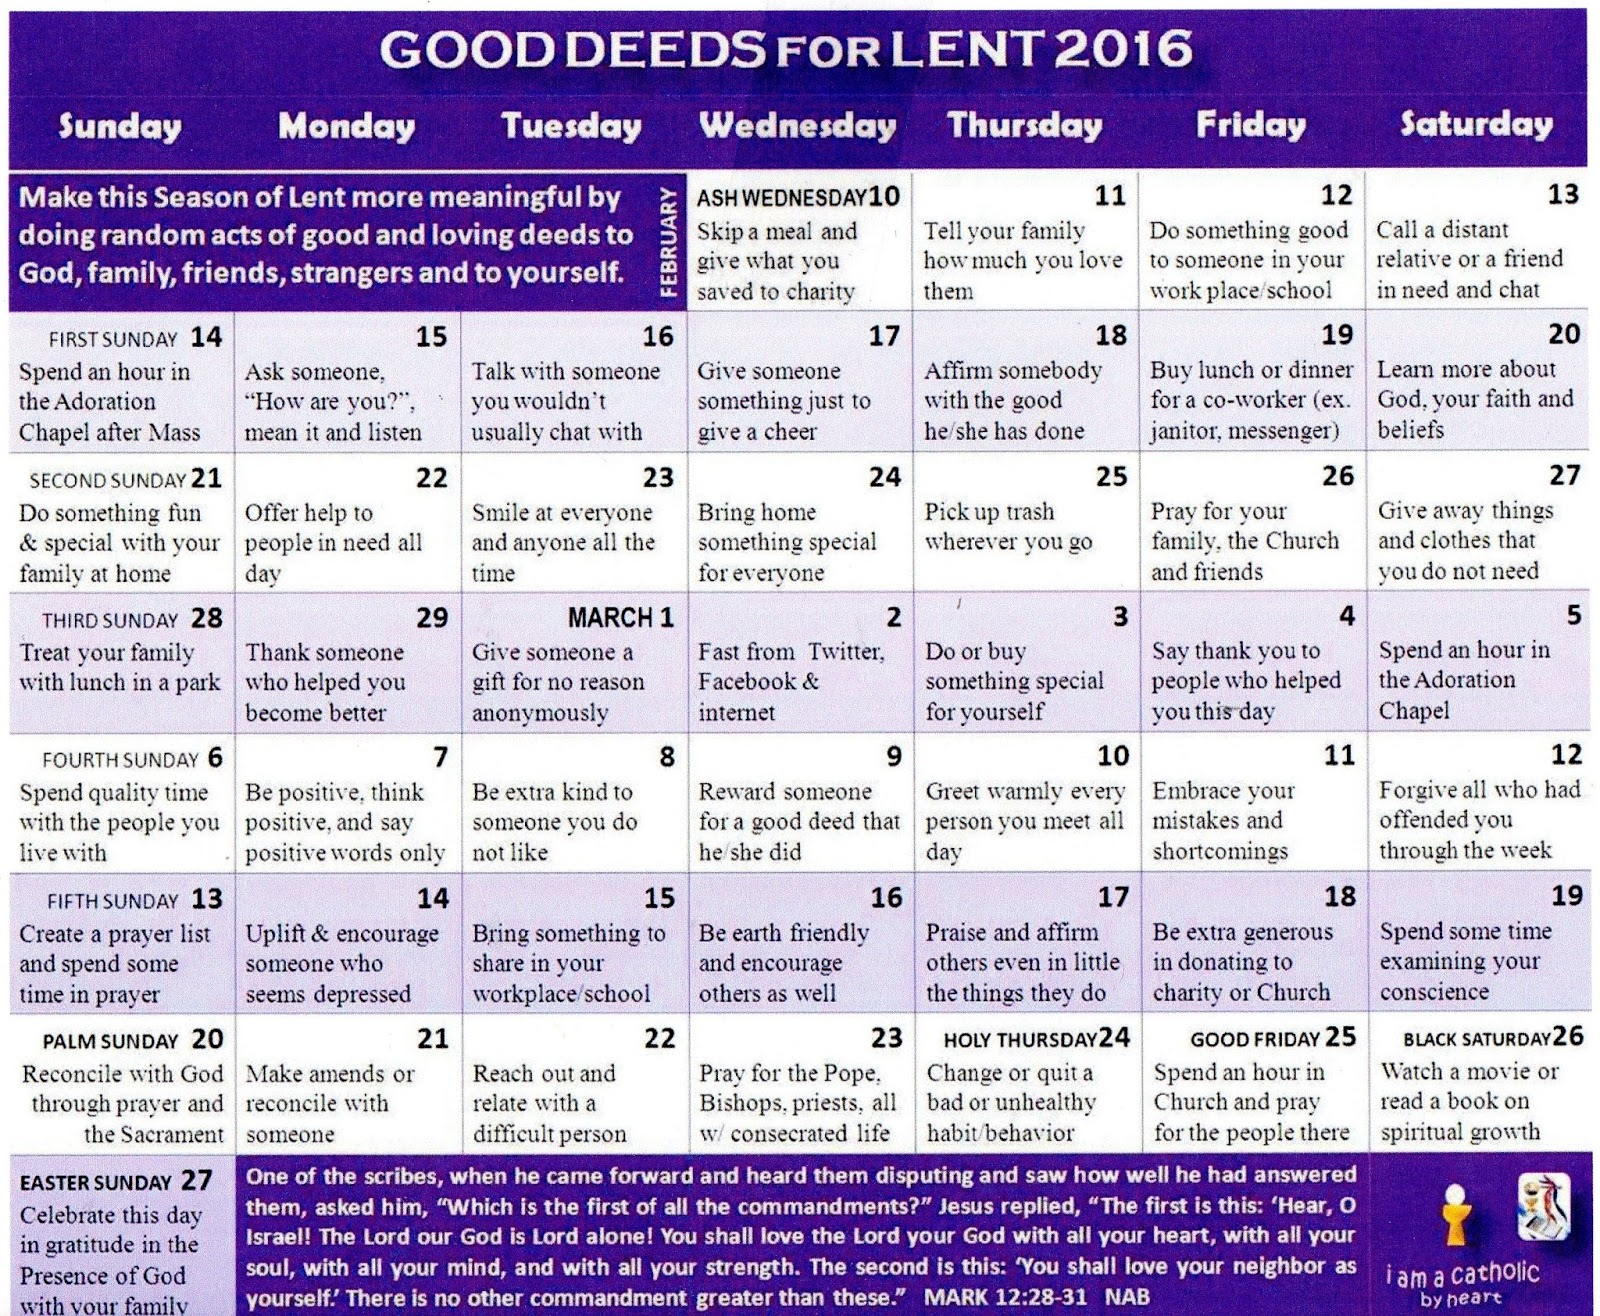 Lent A Season Of Love